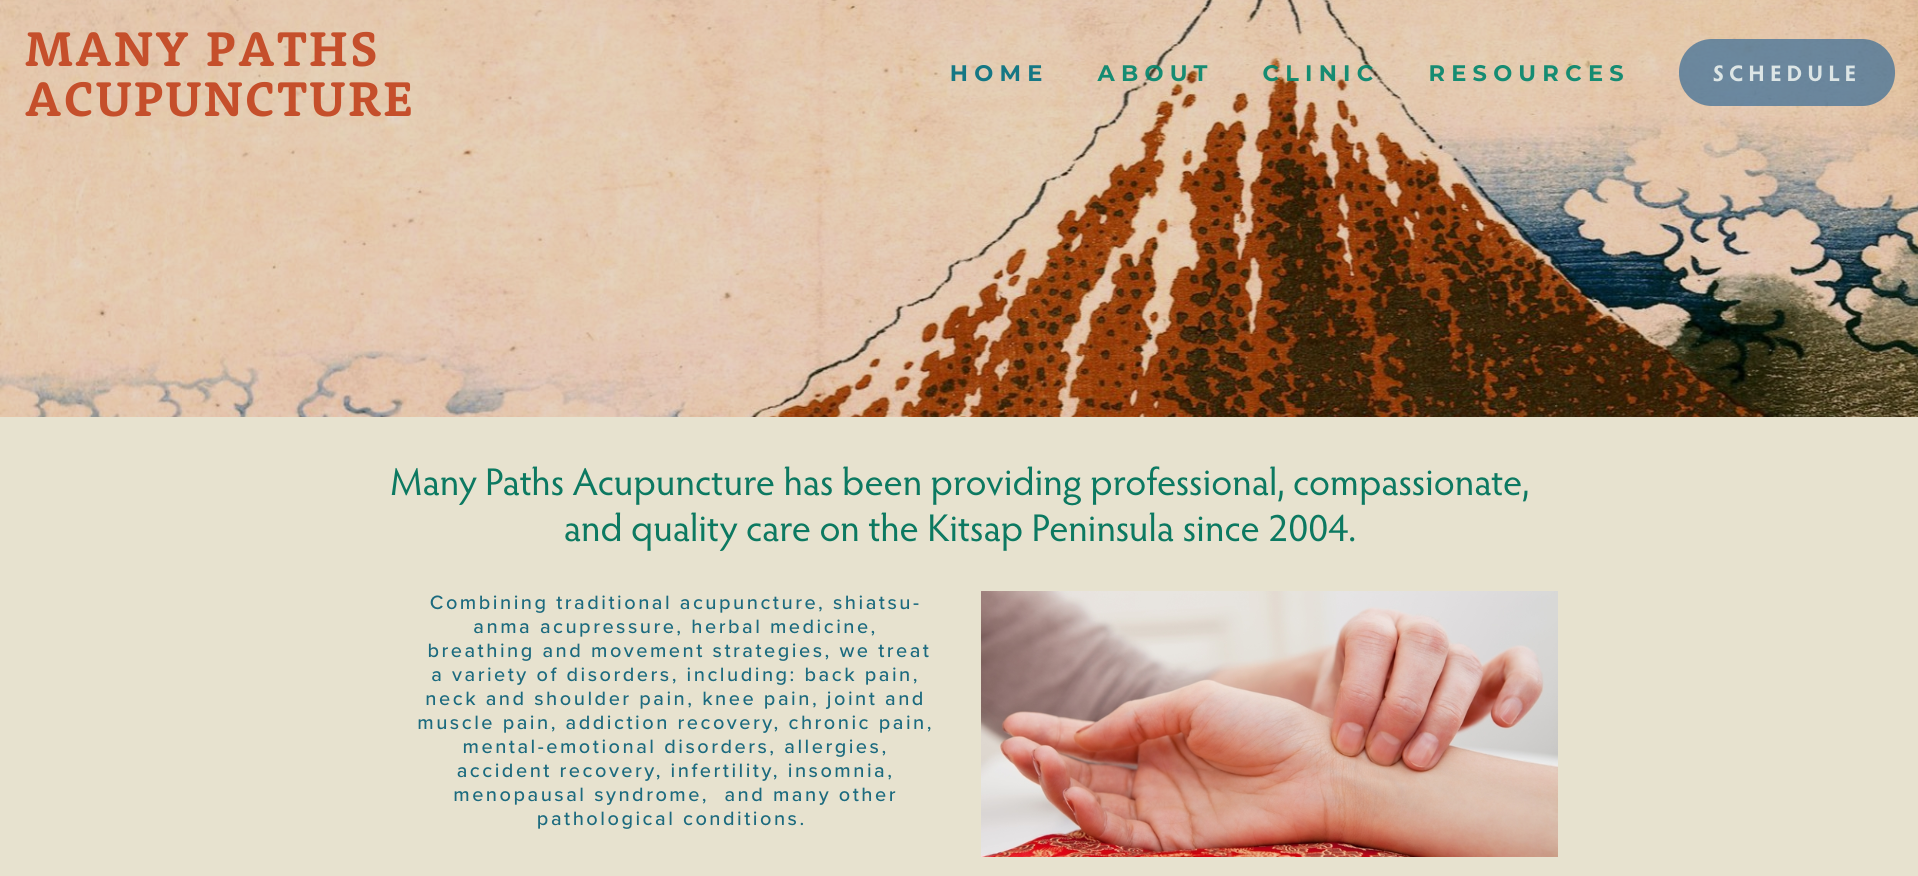 Many Paths Acupuncture